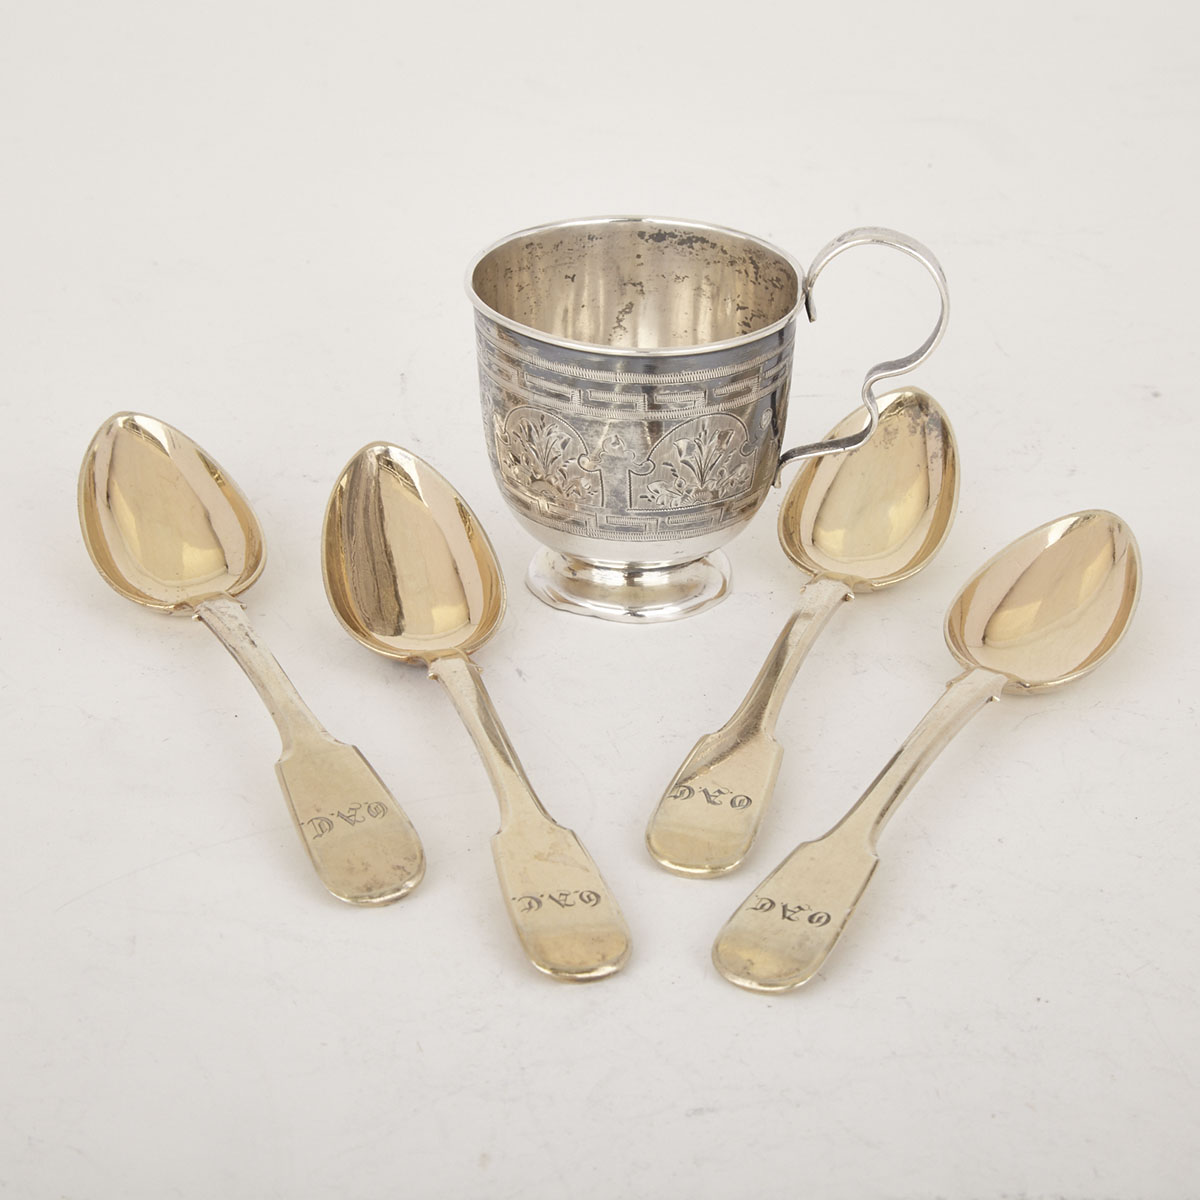 Russian Silver Small Cup, probably Moscow, 1881 and Four Silver-Gilt Fiddle Pattern Tea Spoons, St. Petersburg, 1847